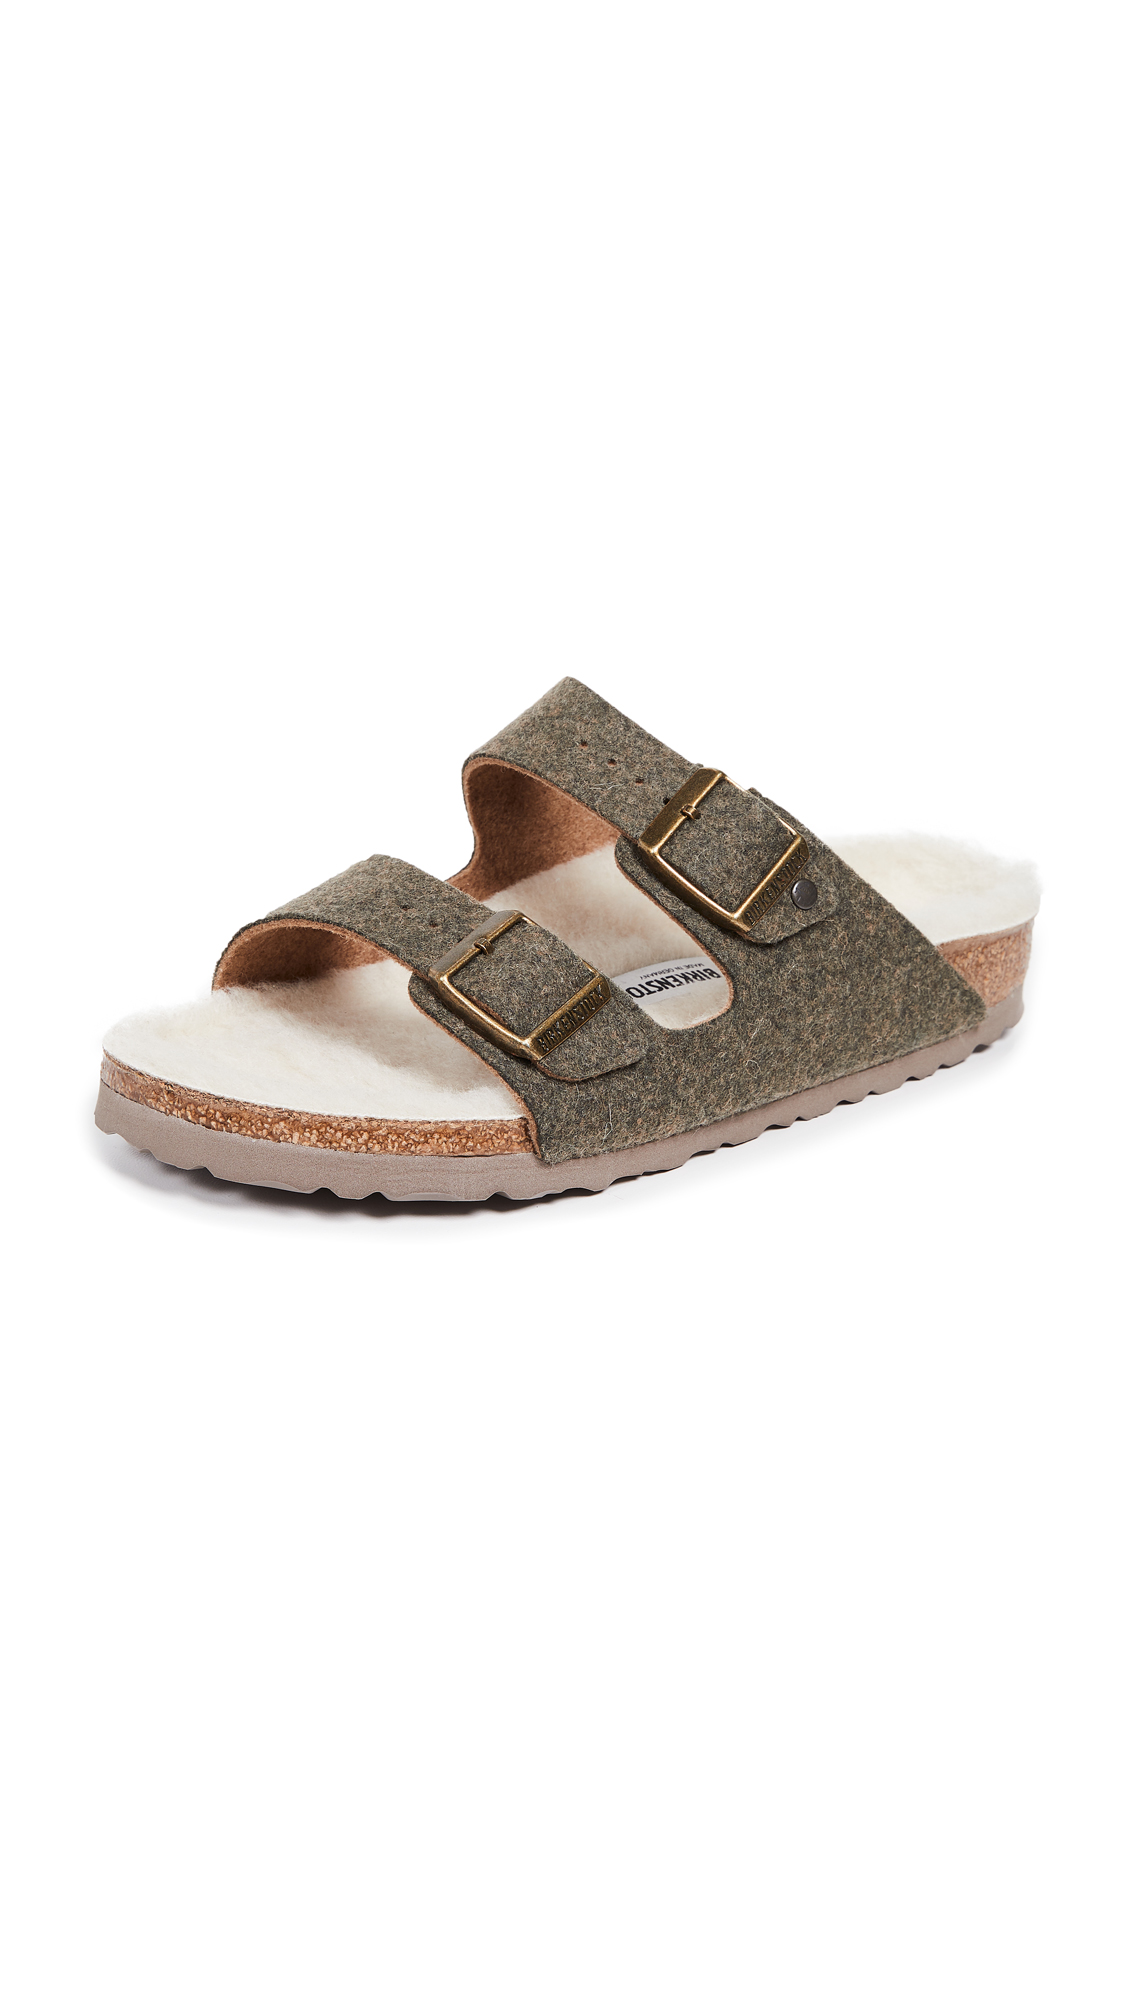 Birkenstock Arizona Happy Lamb Sandals - Double-Face Khaki